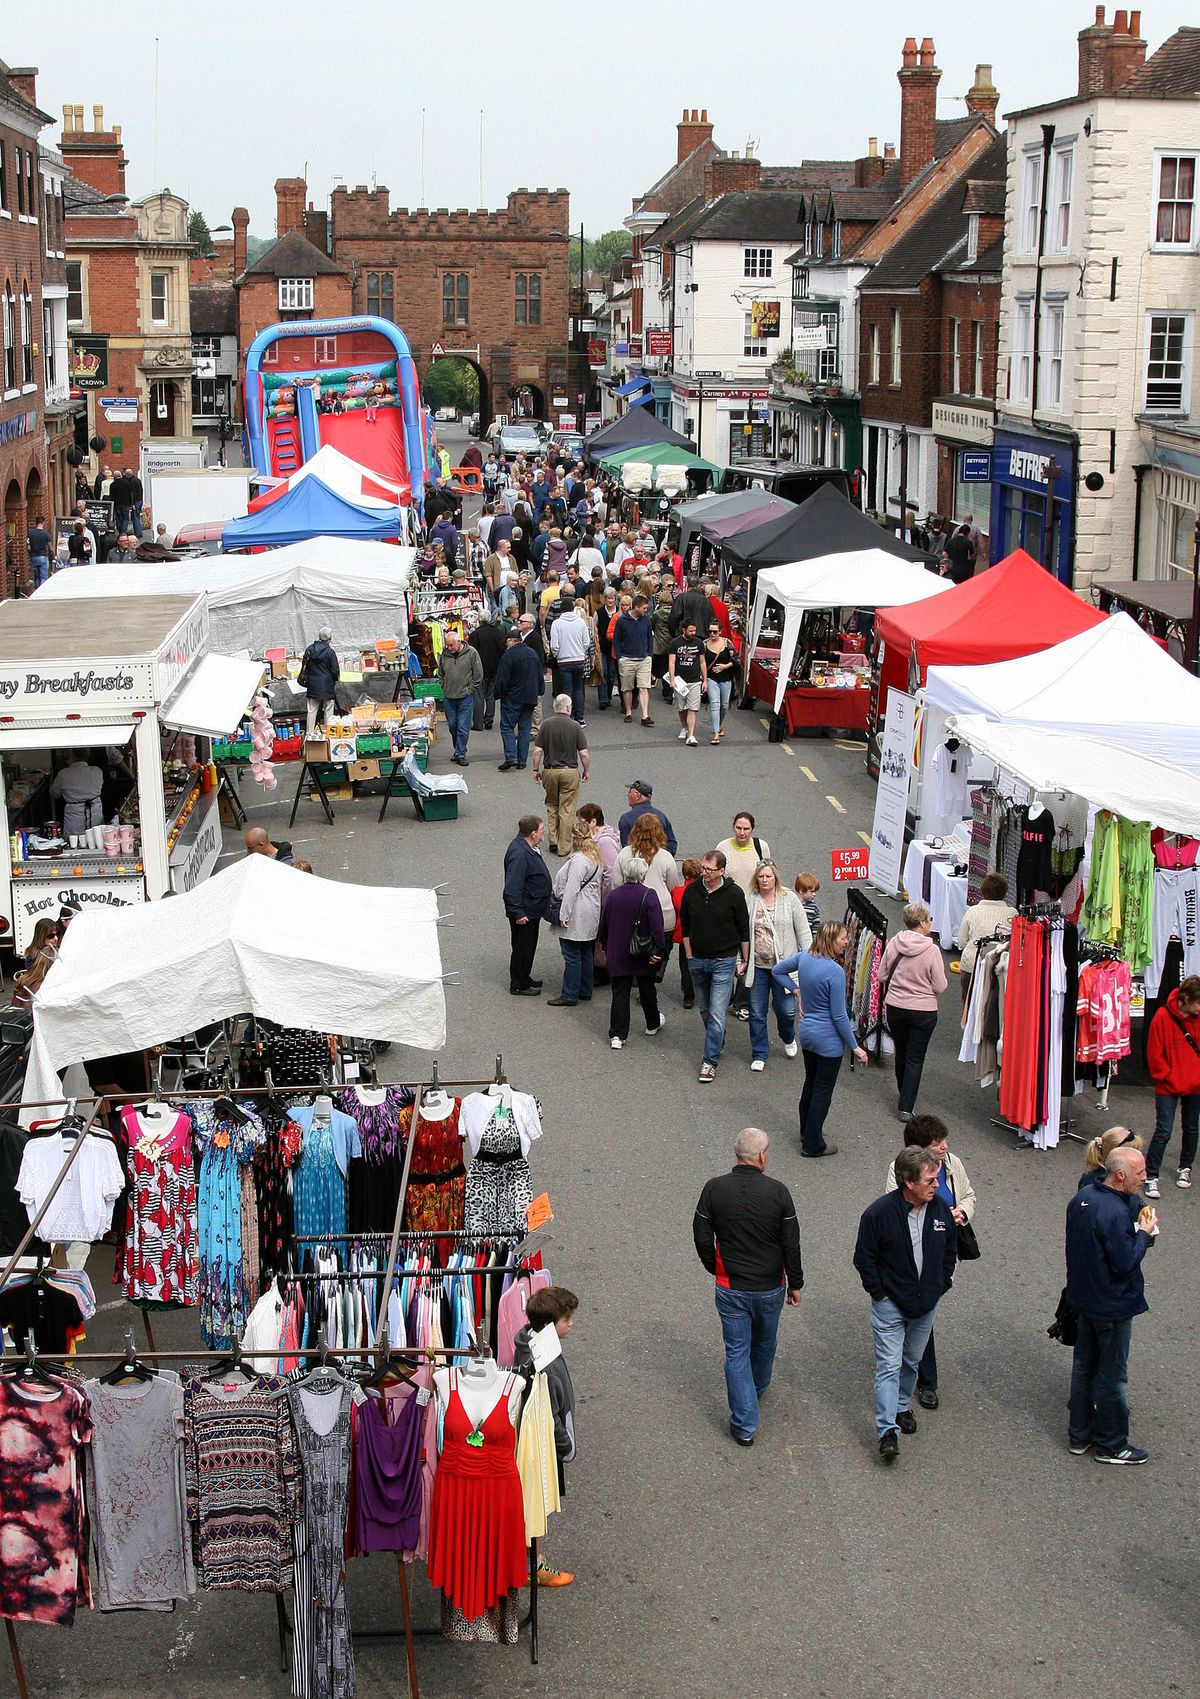 A file photo showing Bridgnorth High Street closed for the market